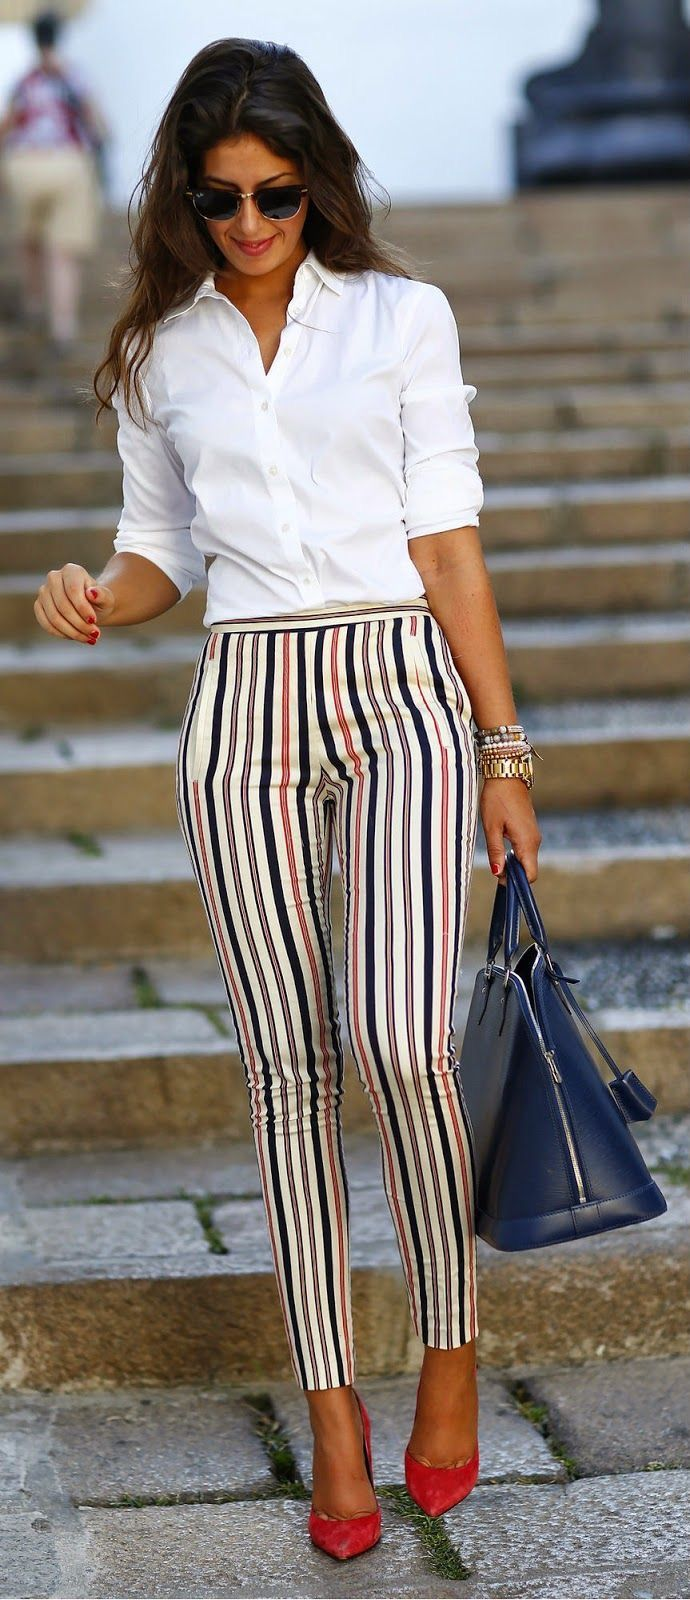 Find More at => http://feedproxy.google.com/~r/amazingoutfits/~3/FLyBafLXCkE/AmazingOutfits.page